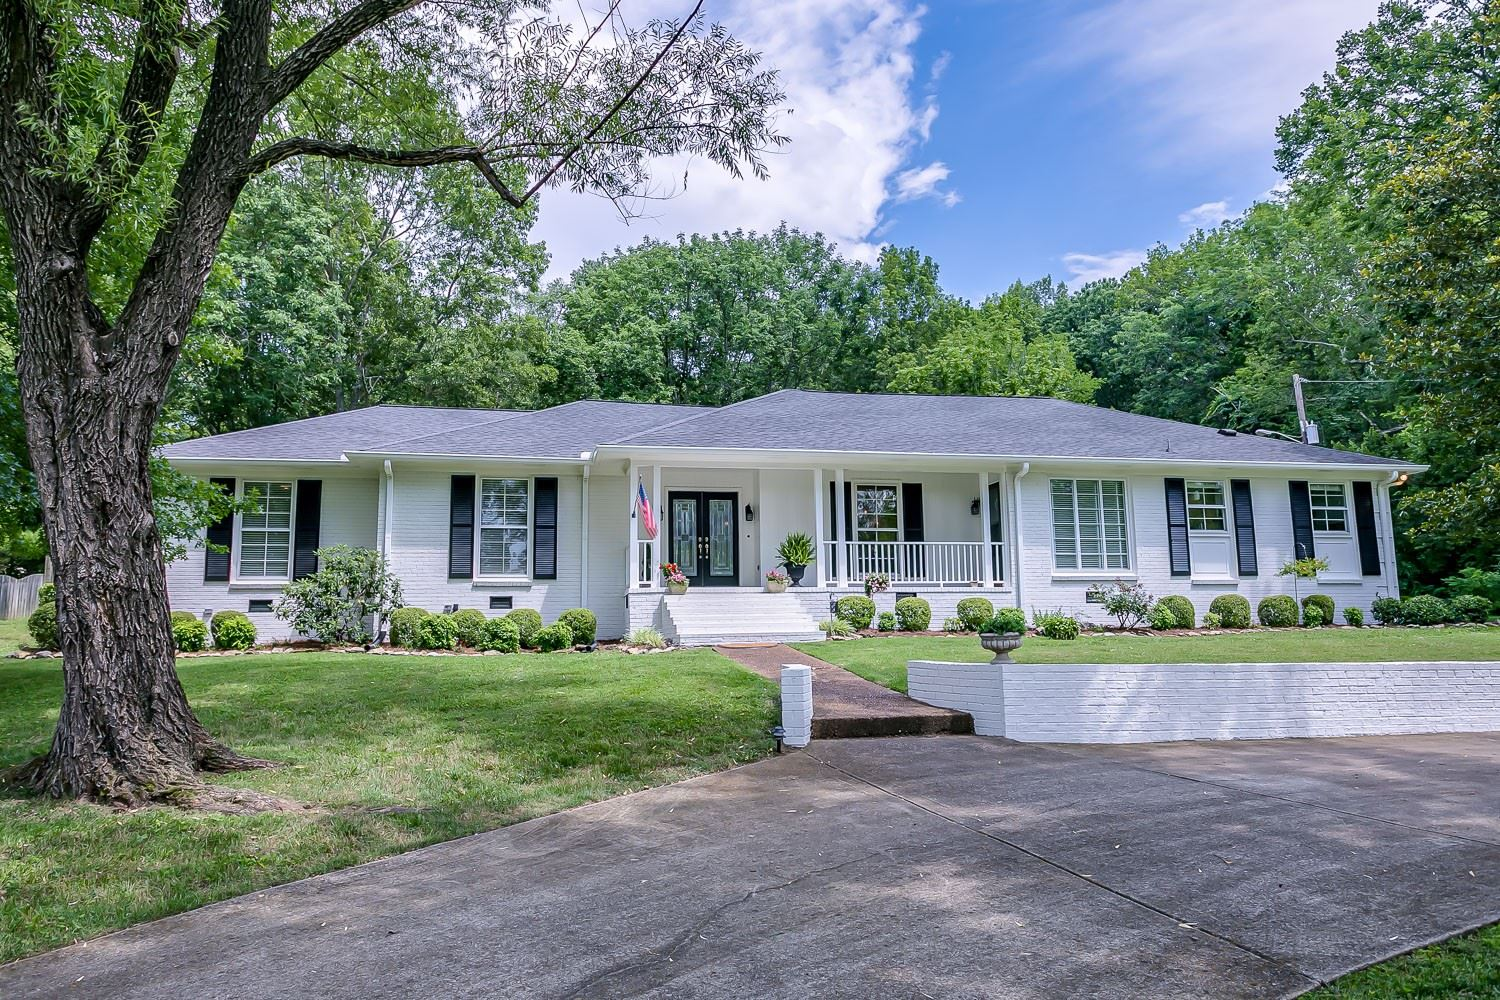 Photo of 6430 Panorama Dr, Brentwood, TN 37027 (MLS # 2165717)